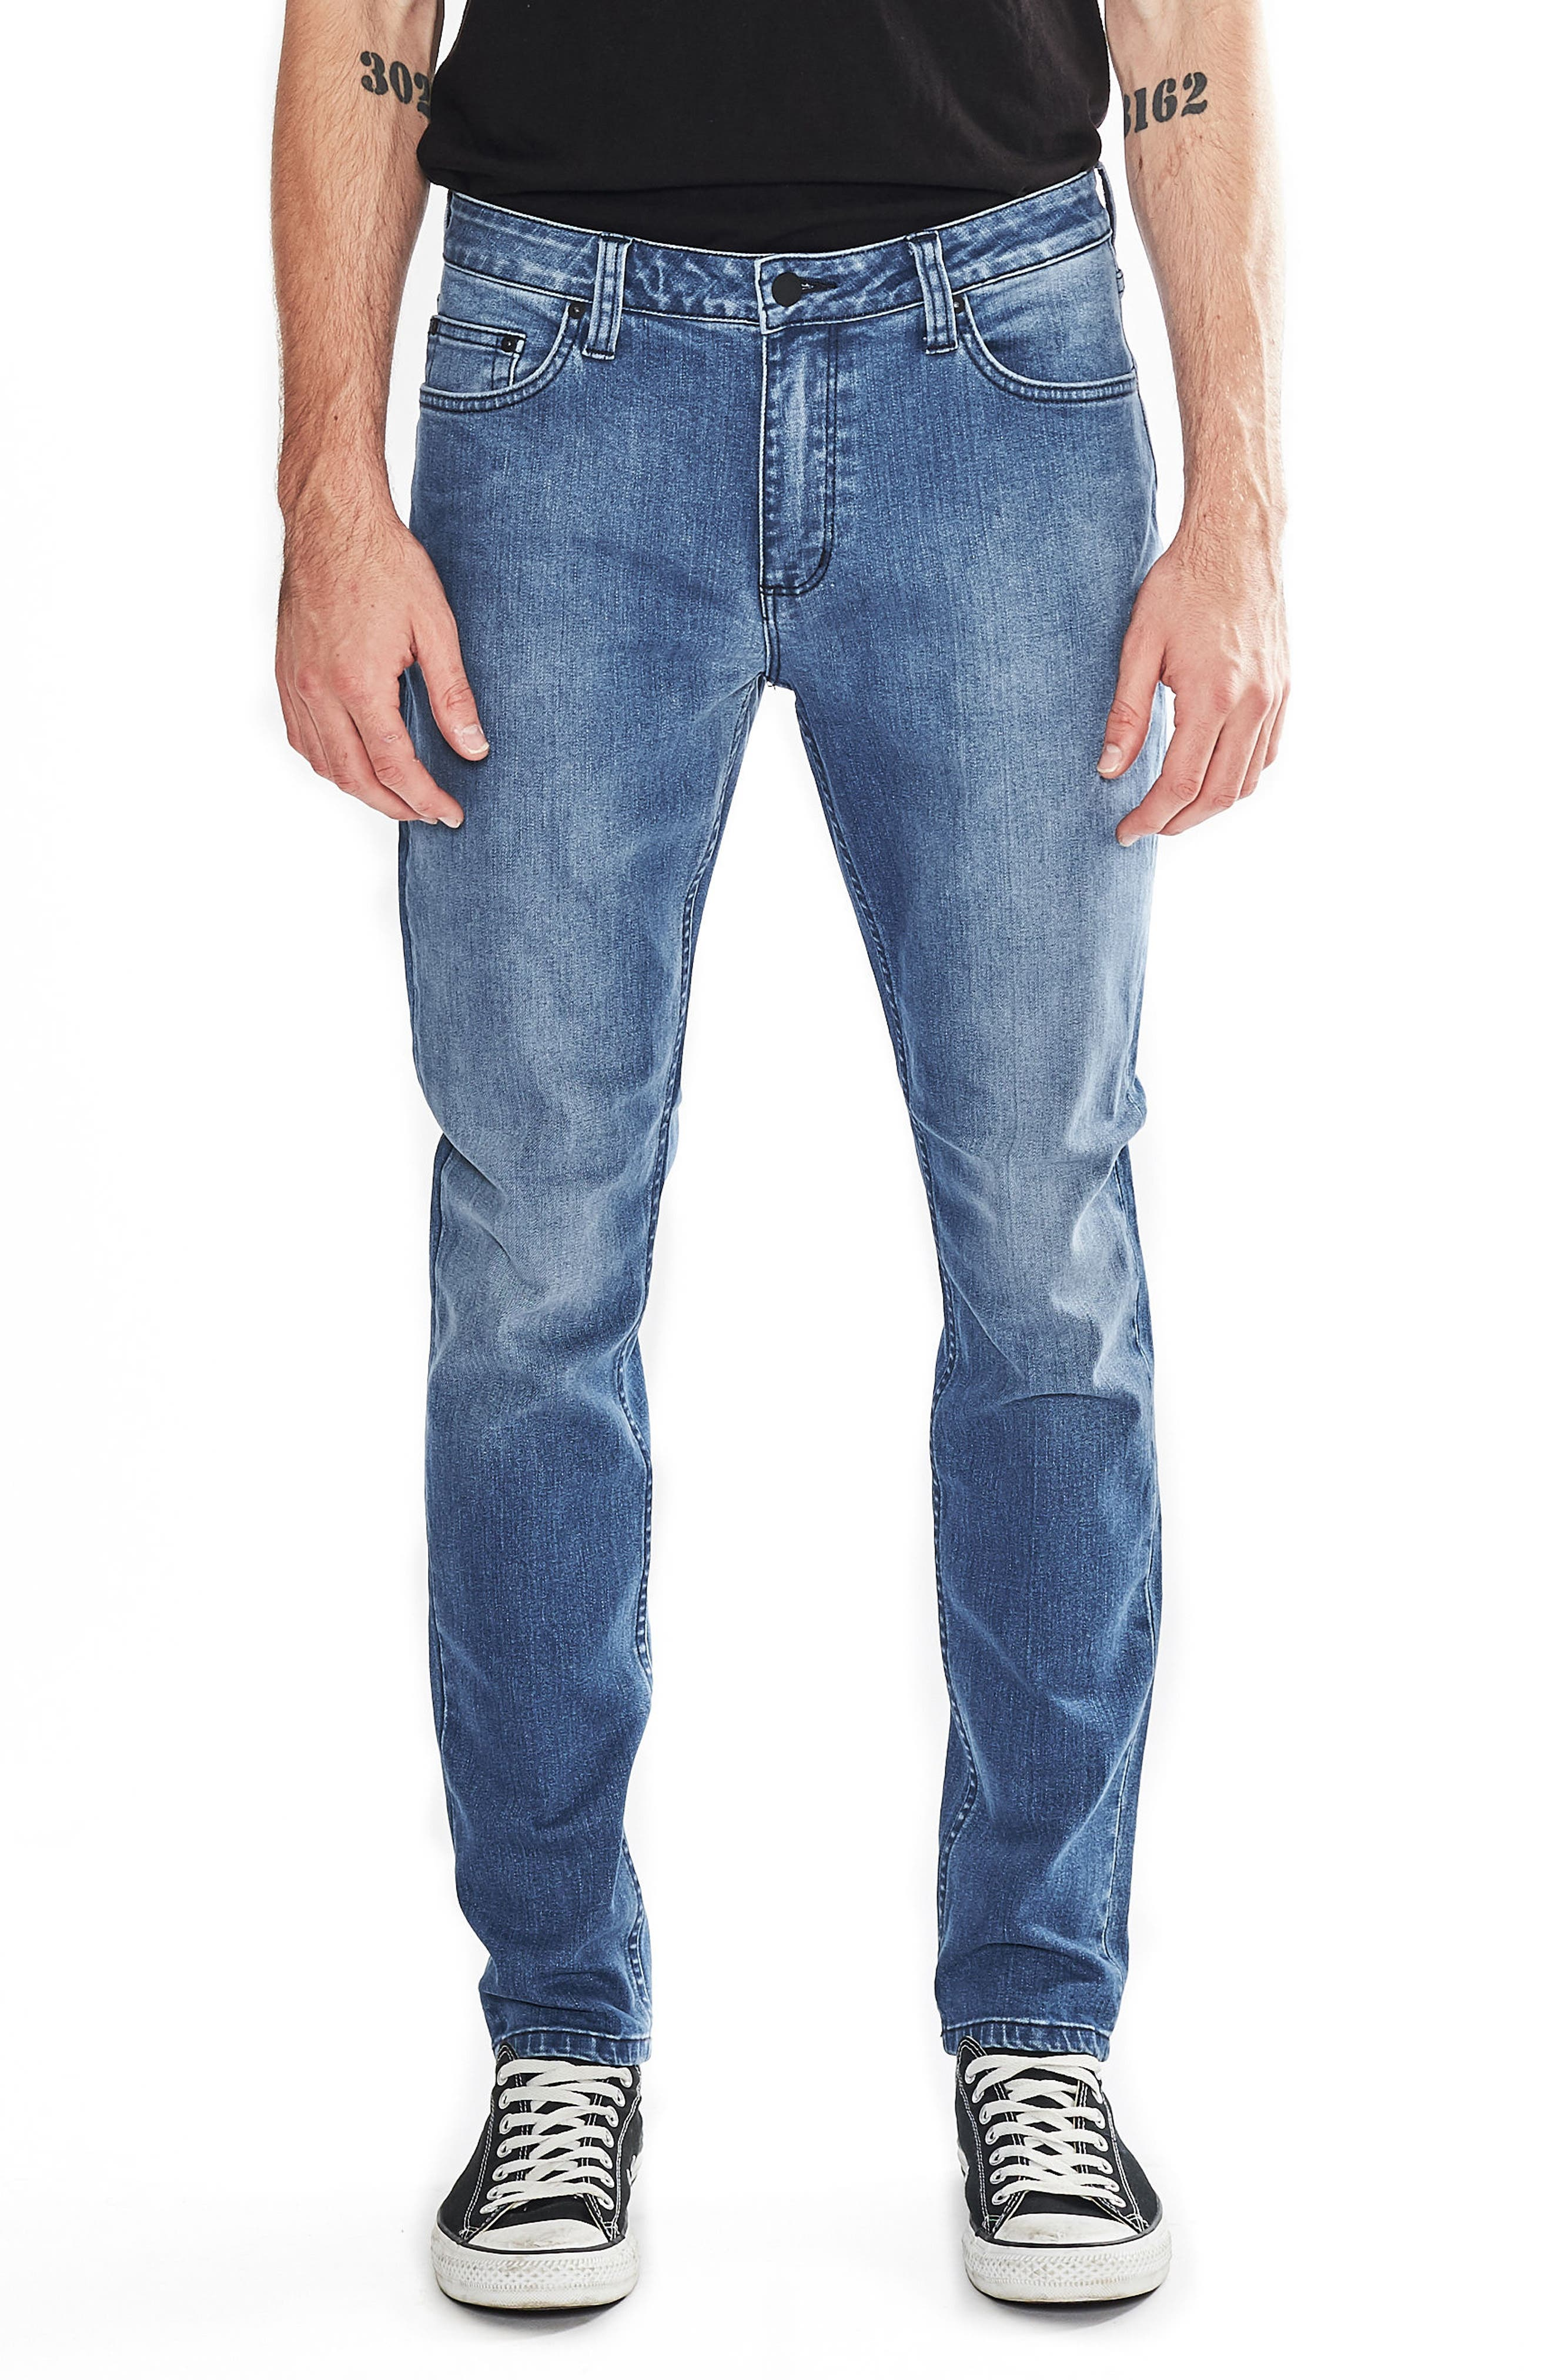 ROLLA'S Tim Slims Slim Fit Jeans (Safety Beach Blue)